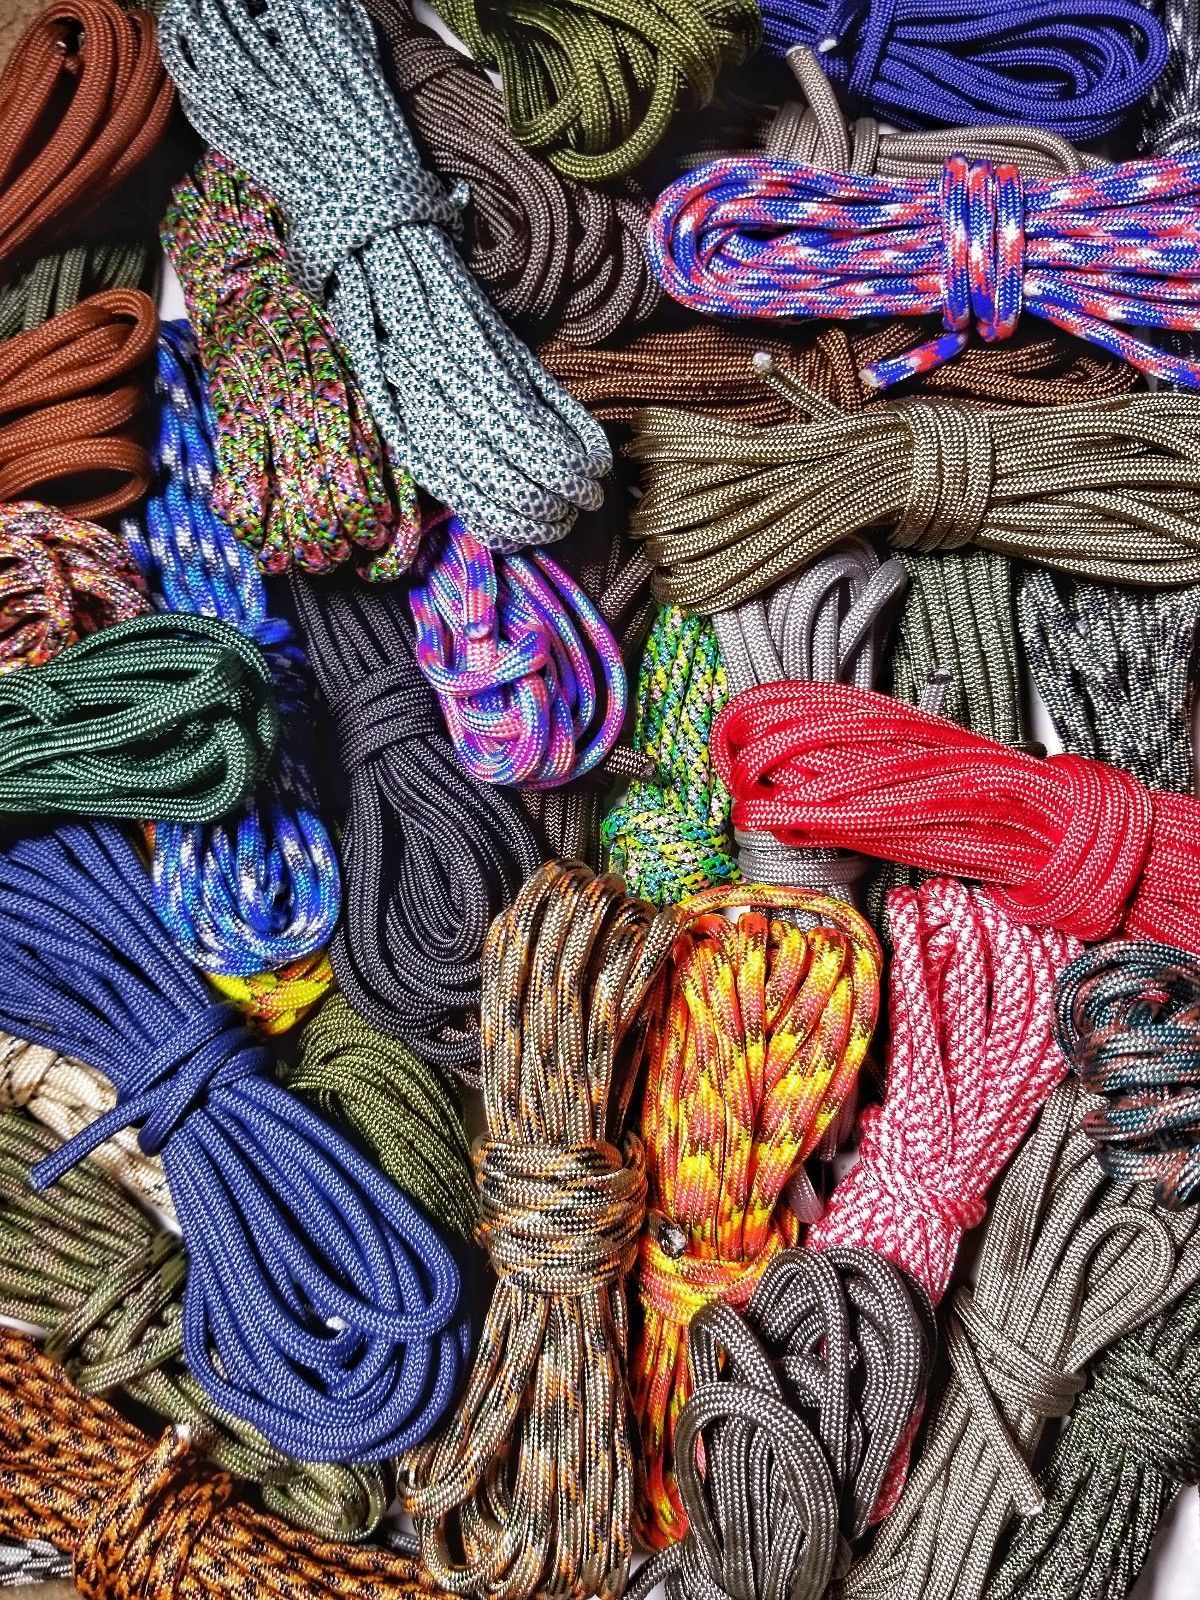 Other Craft Wholesale Lots 45077 Paracord Variety Pack 100 Feet